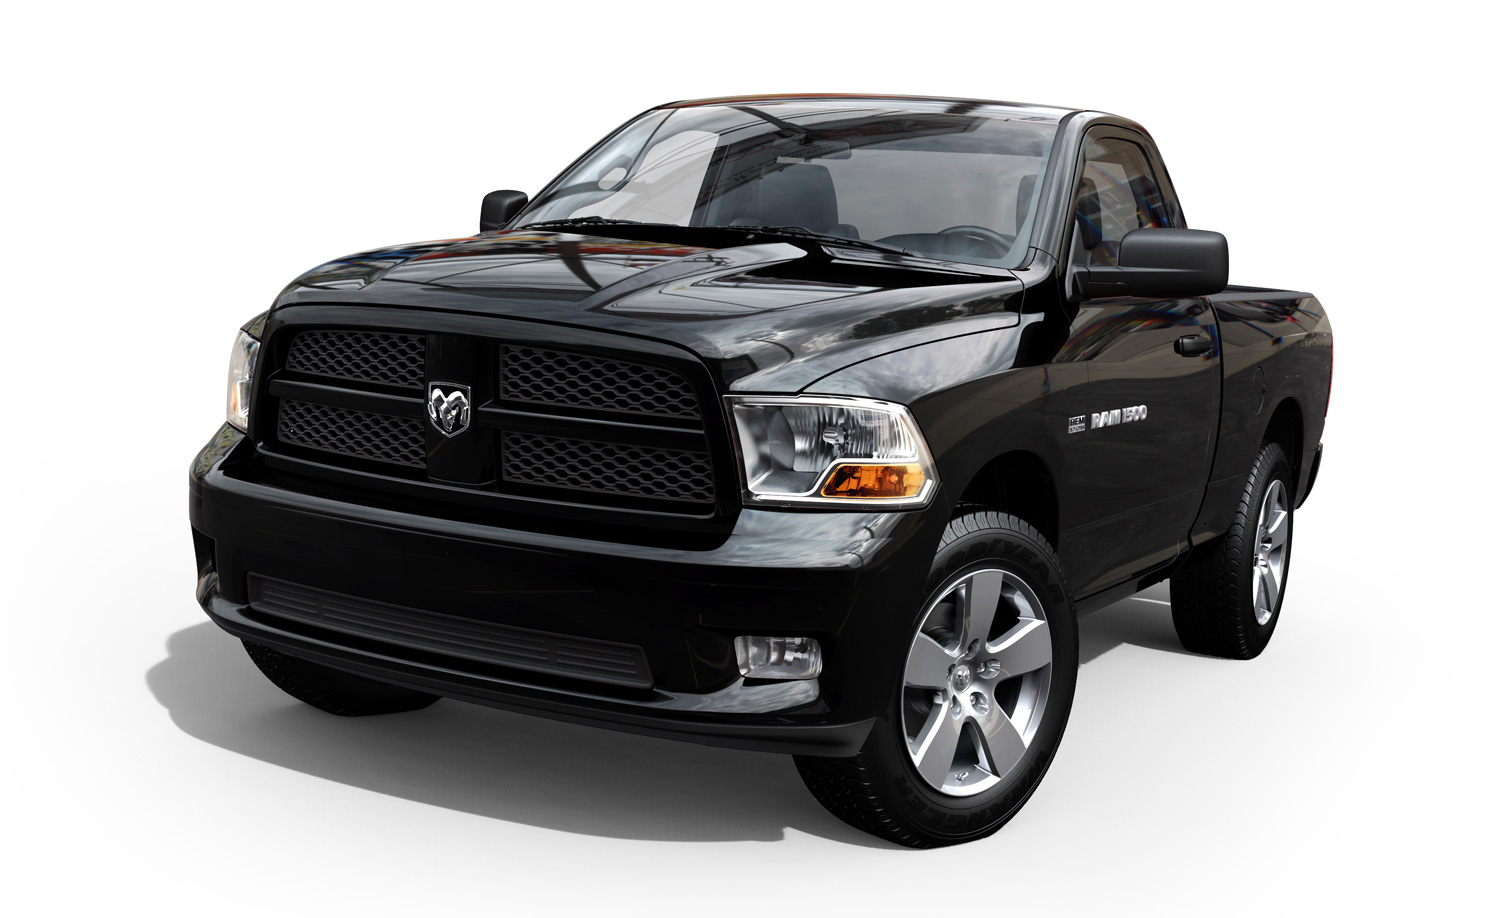 small resolution of name game ram adventurer becomes 2011 ram 1500 express